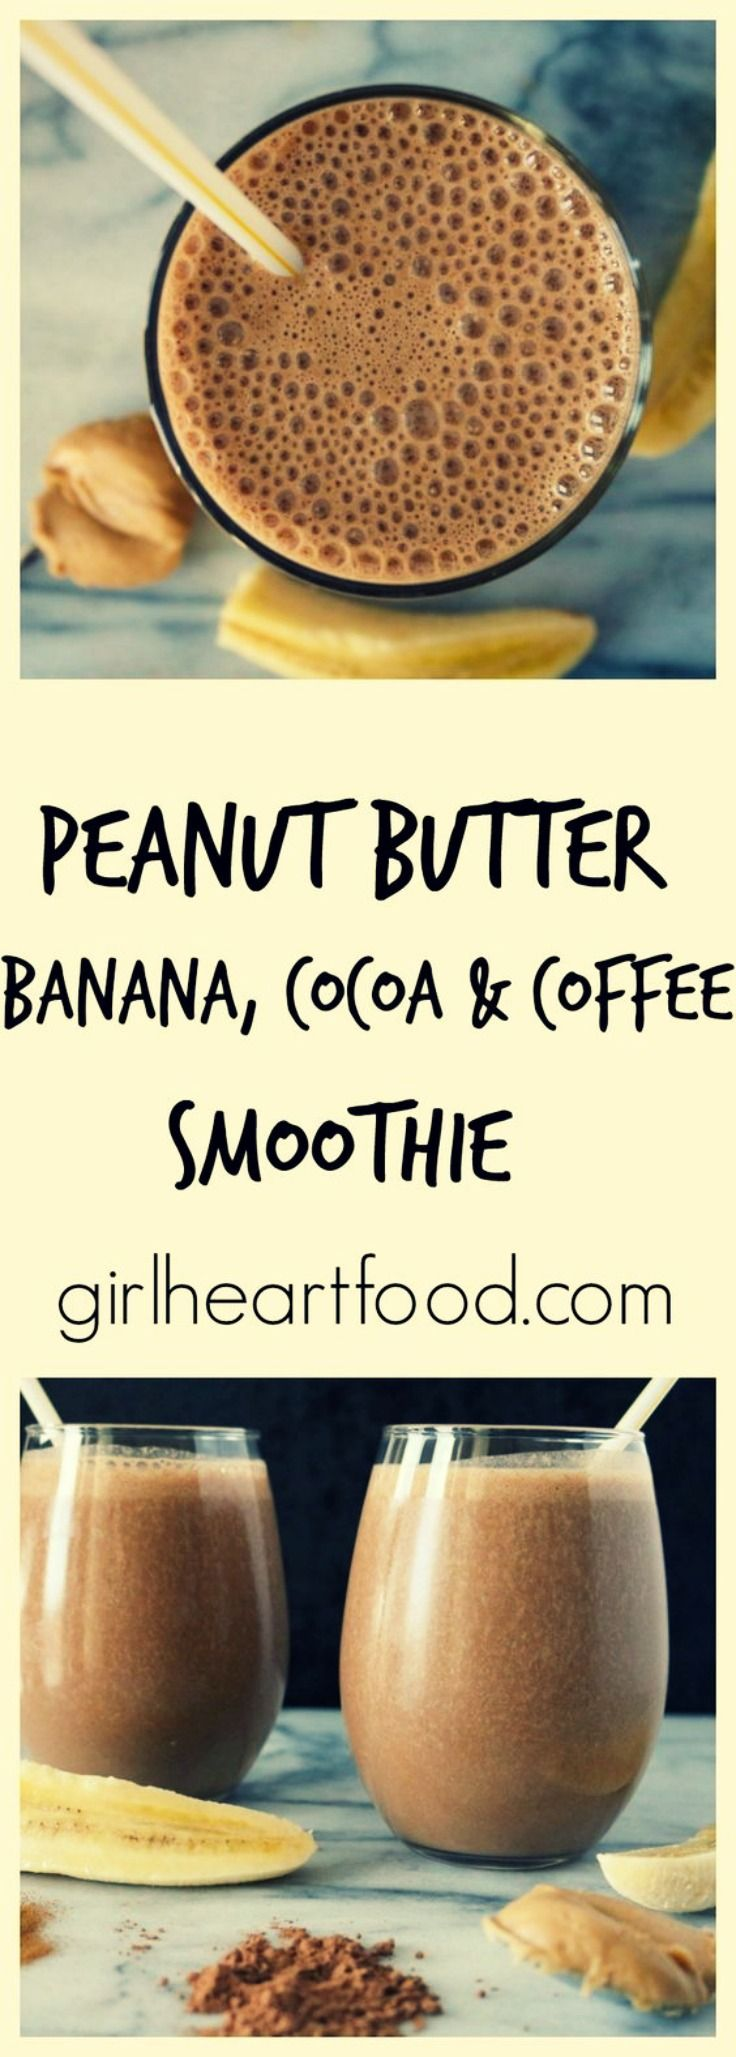 This Peanut Butter, Banana, Cocoa and Coffee Smoothie is out of this world! There's absolutely no refined sugar and yet it is still deliciously sweet-like. It's rich in flavour from cocoa & espresso powders and you'll think that you're drinking something way more indulgent than it actually is. So good! #smoothie #batido #peanutButter #mantequillacacahuete #Cocoa #cacao #Coffee #café #banana #platano via @Girlheartfood